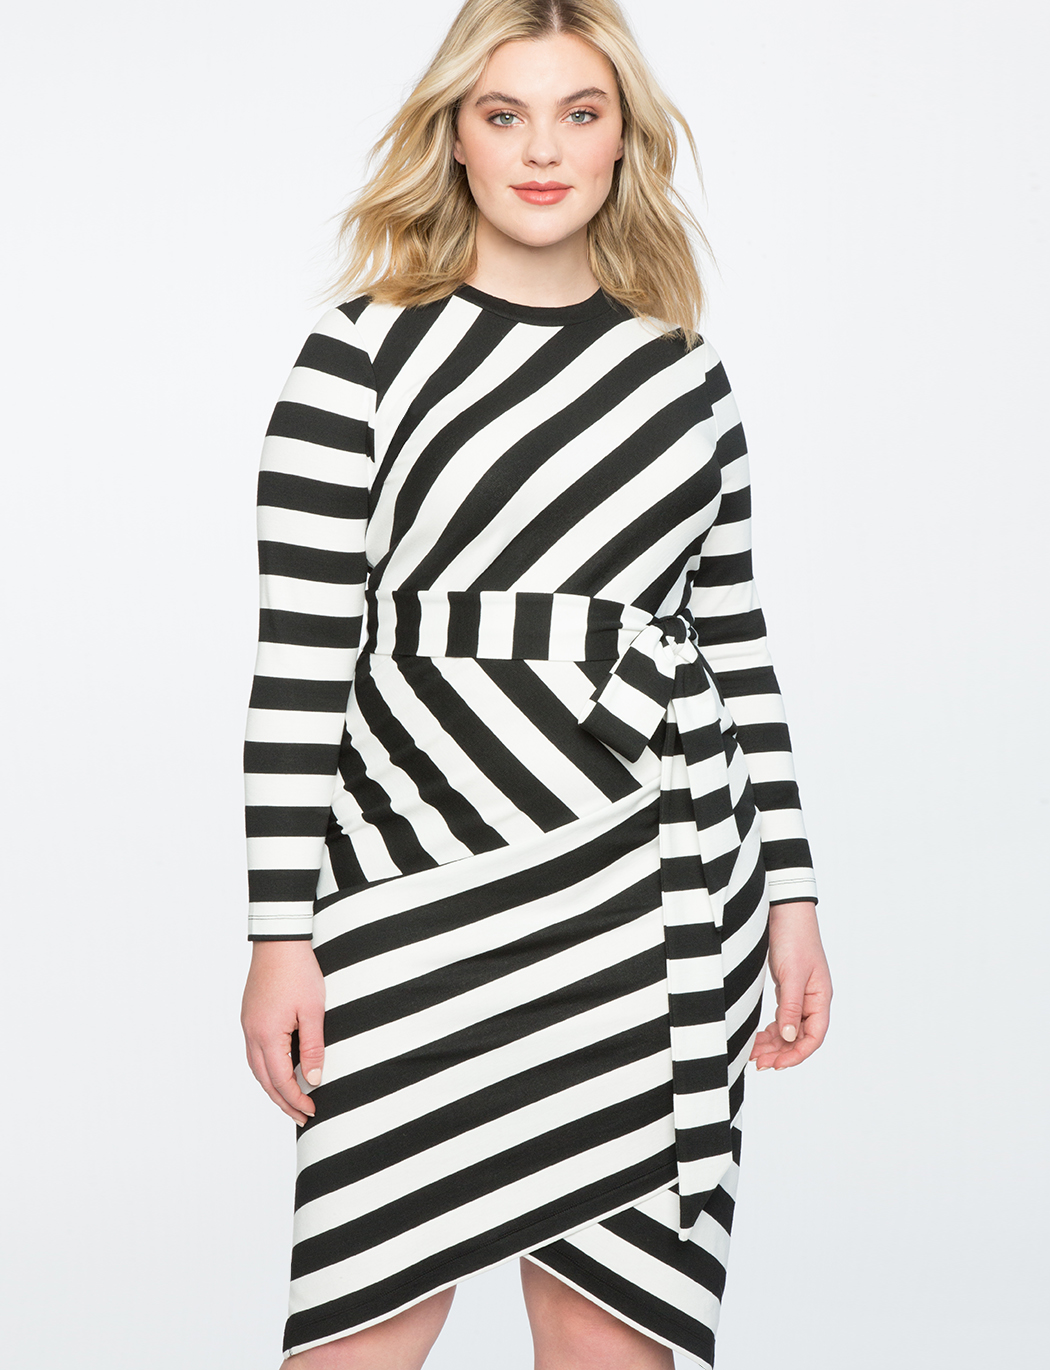 Blocked Stripe Dress | Women\'s Plus Size Dresses | ELOQUII